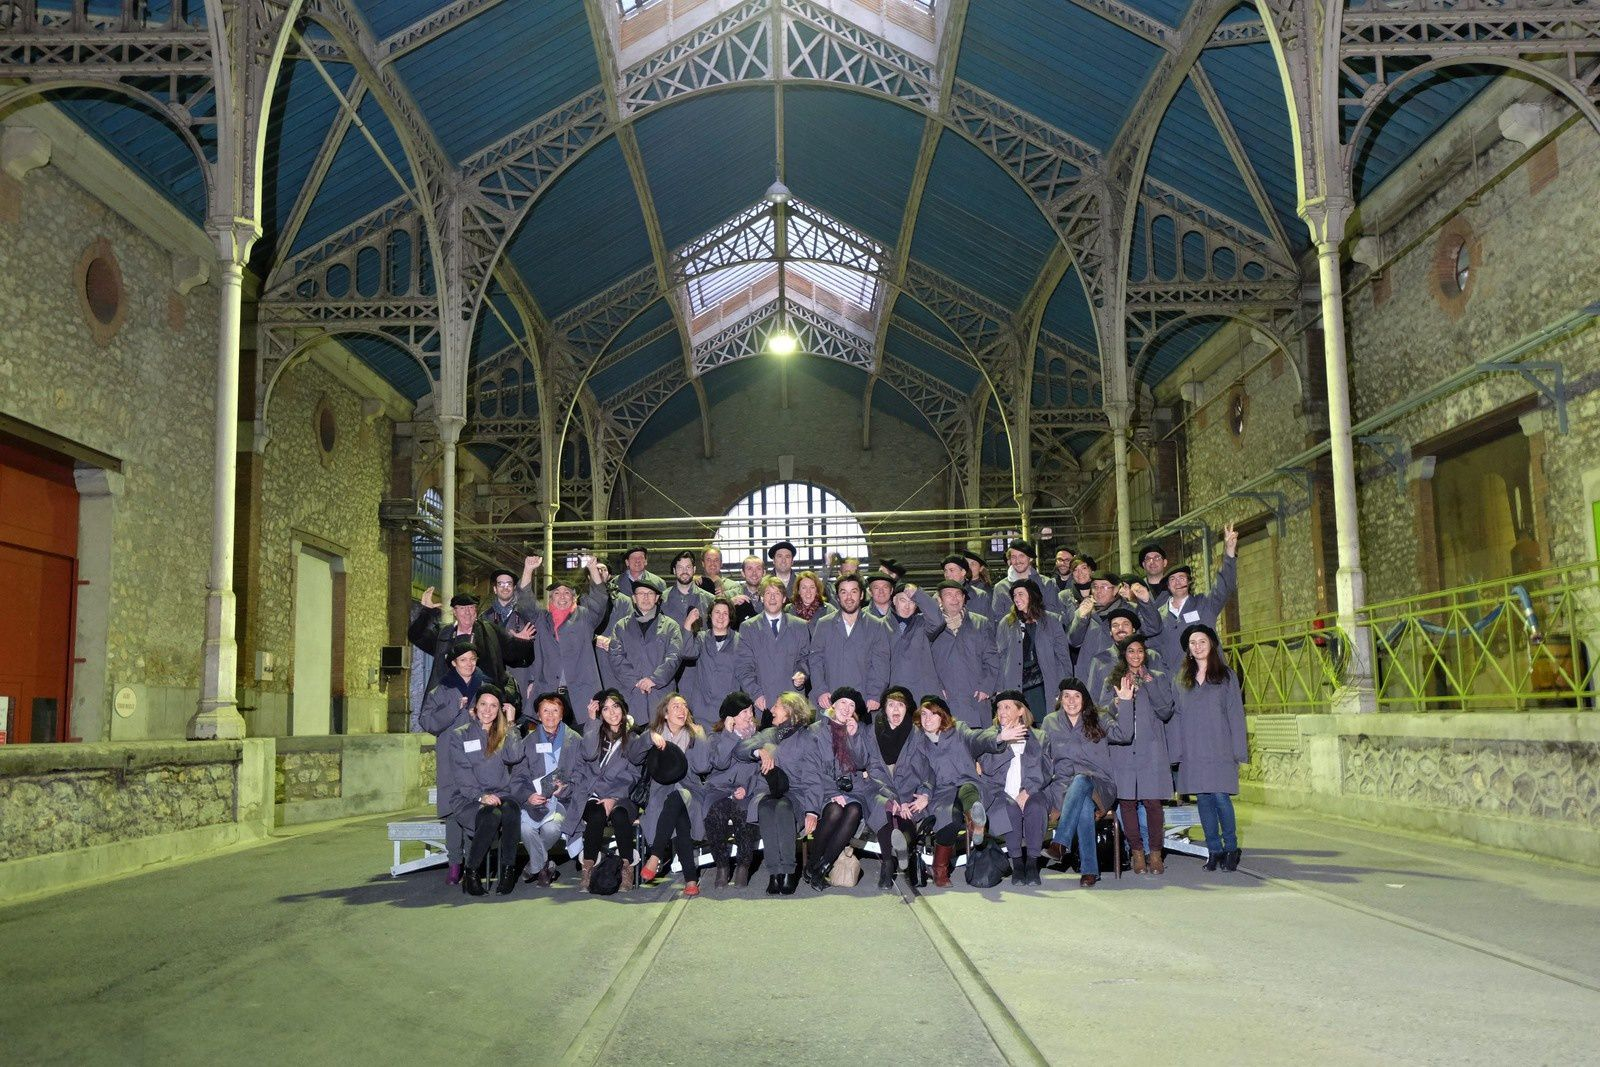 En souvenir de la journée : la photo de classe sous la charpente en acier due à Gustave Eiffel. © photo Pernod.